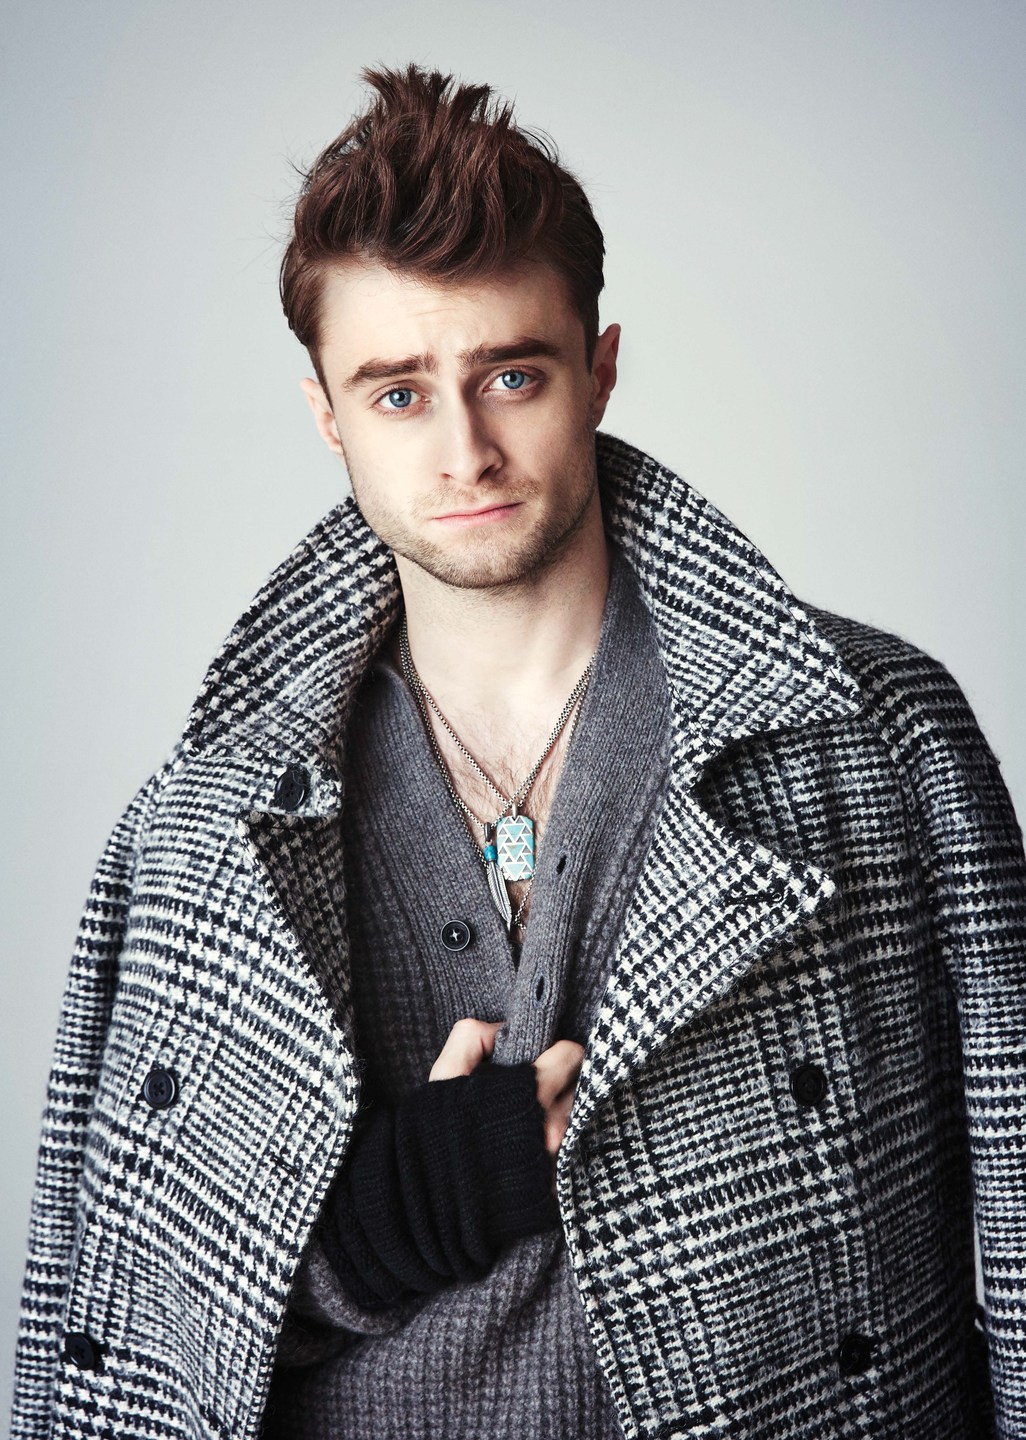 MOST BEAUTIFUL MEN: DA... Daniel Radcliffe